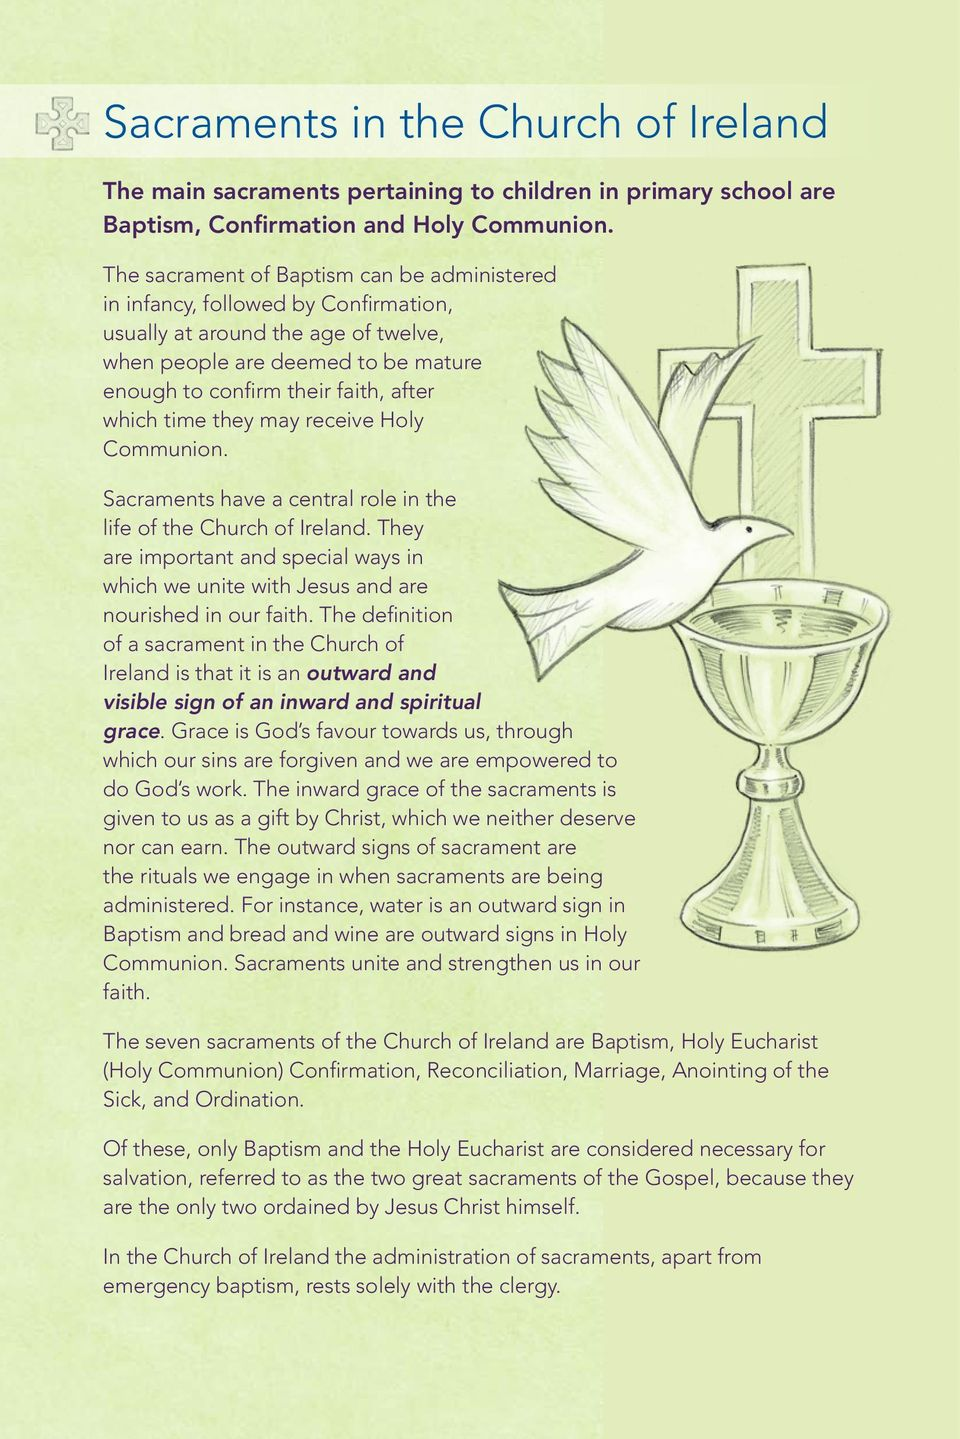 time they may receive Holy Communion. Sacraments have a central role in the life of the Church of Ireland.